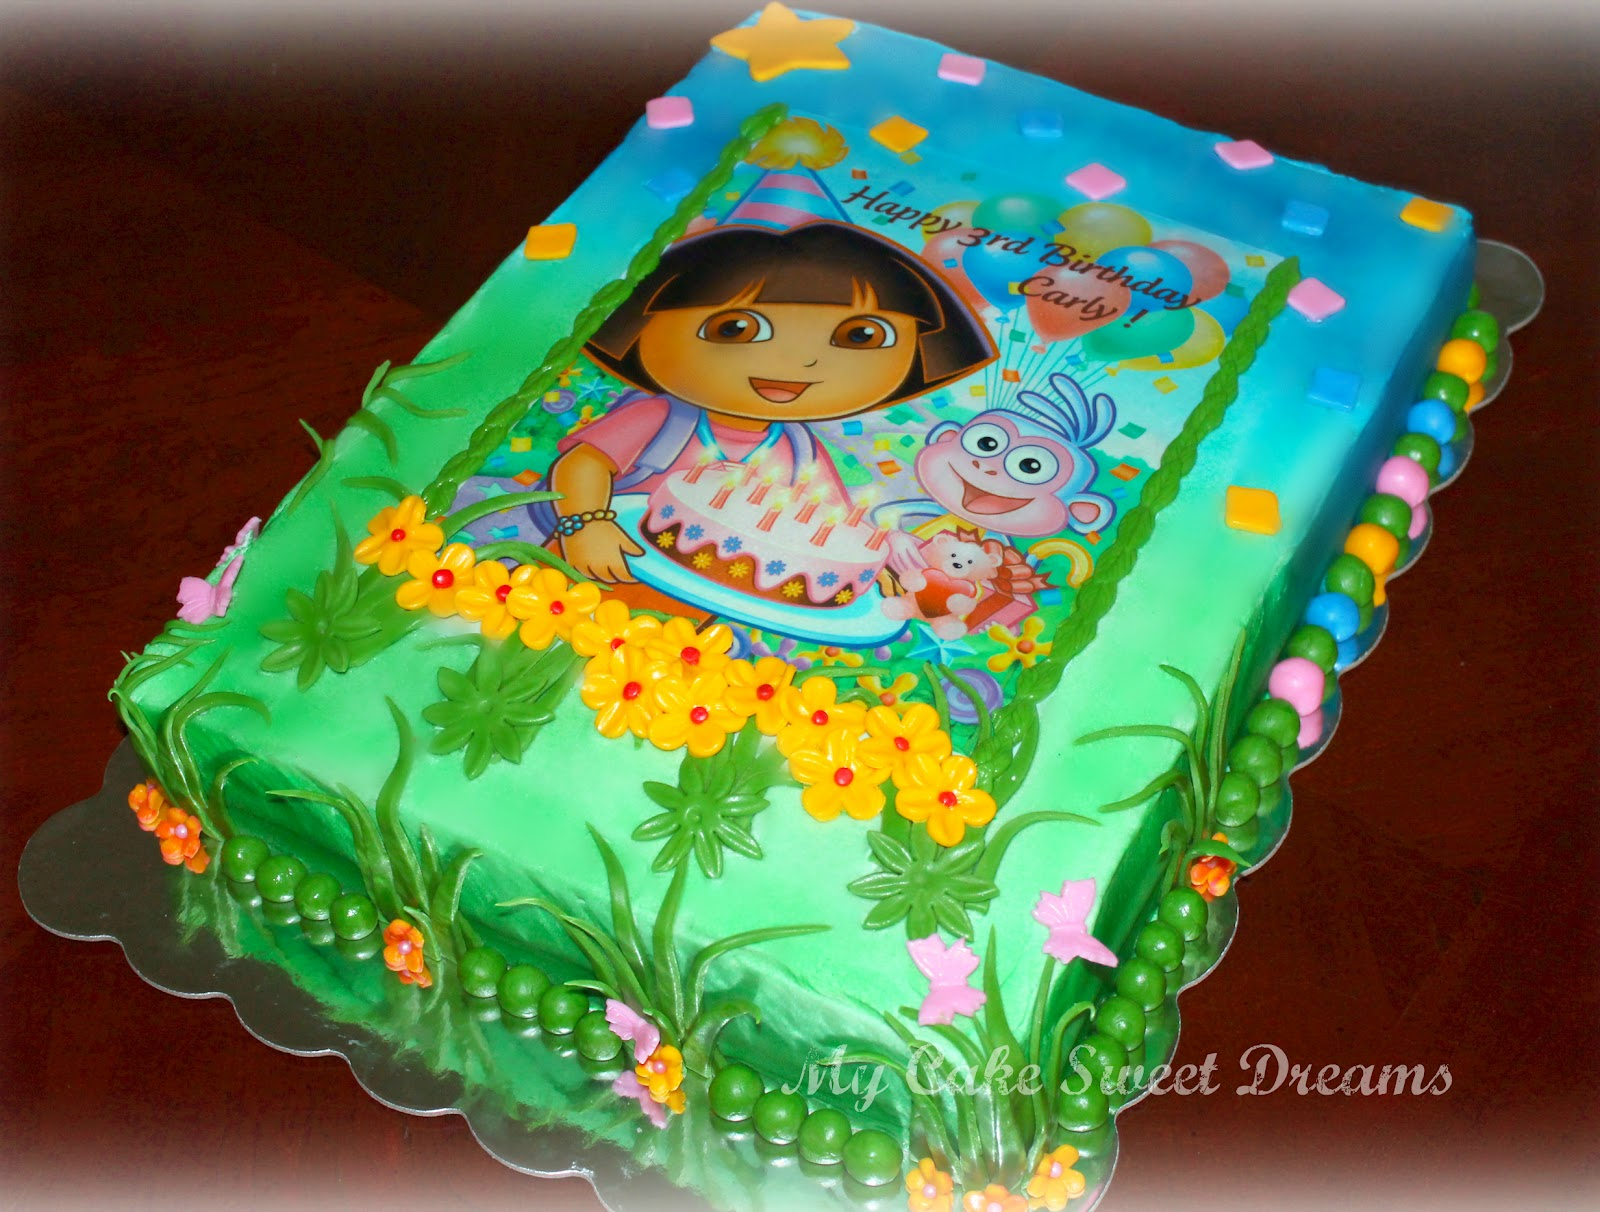 My Cake Sweet Dreams Dora Birthday Cake